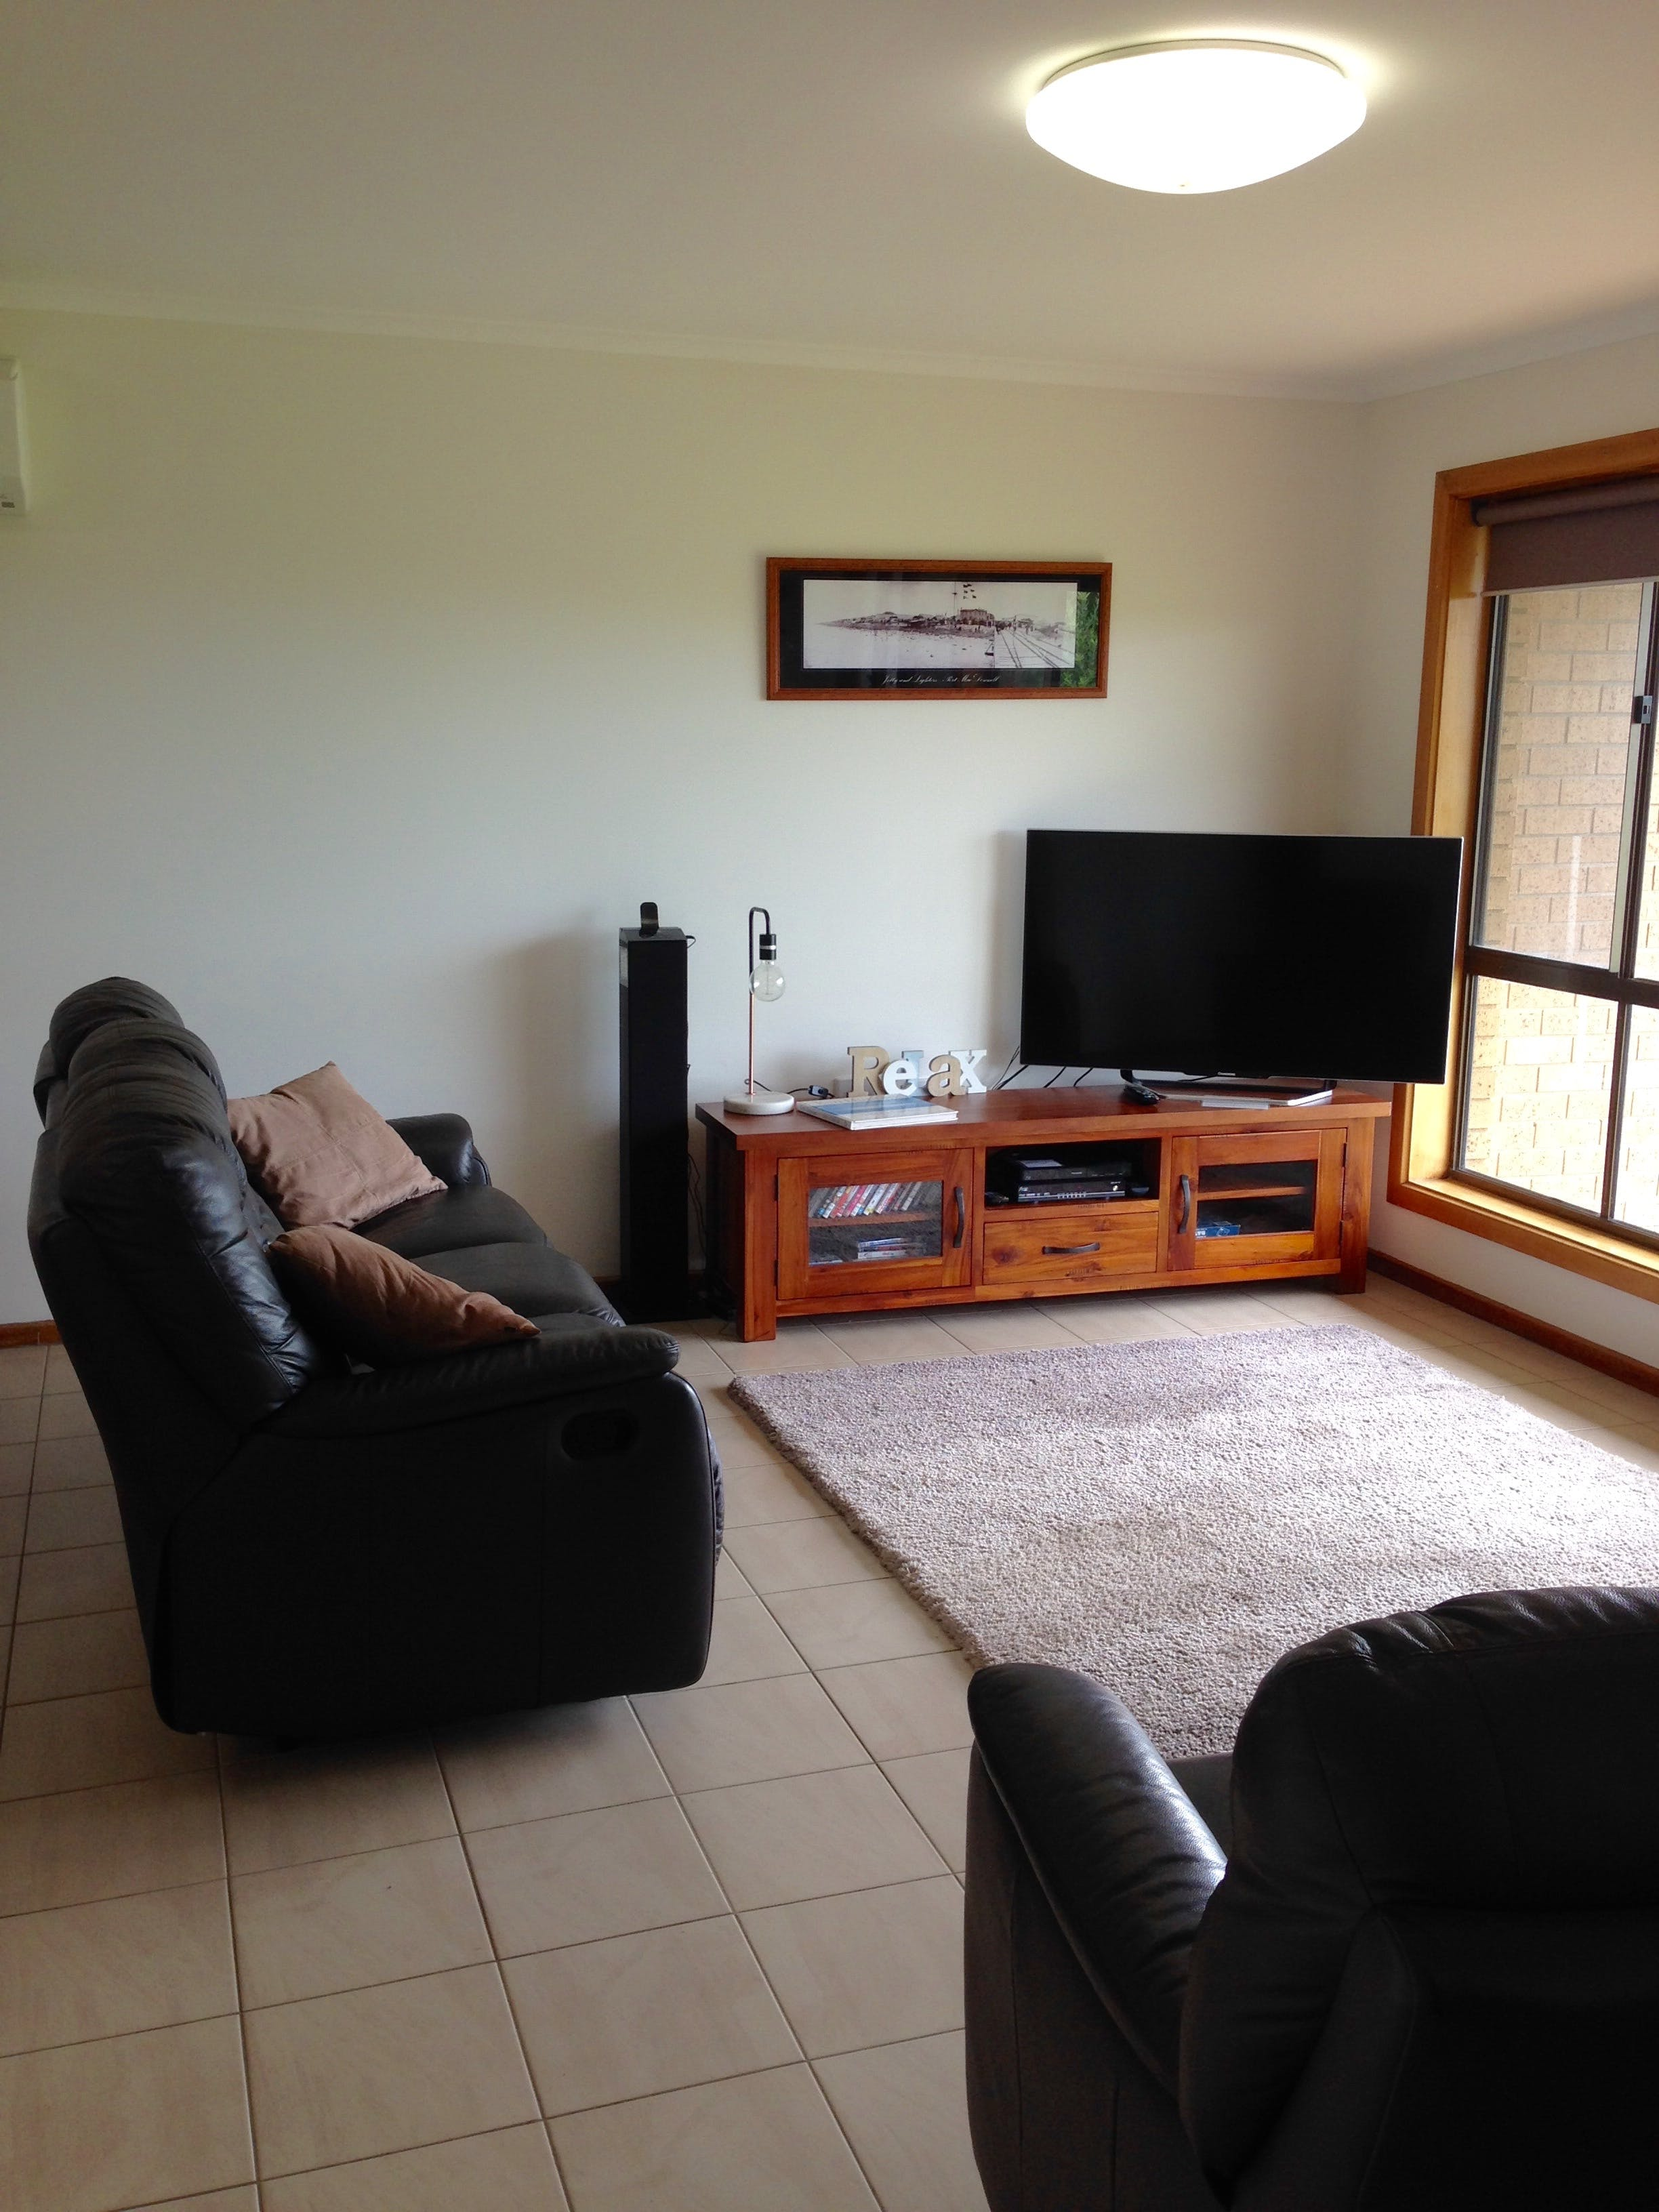 Springs Beach House - Accommodation Broken Hill